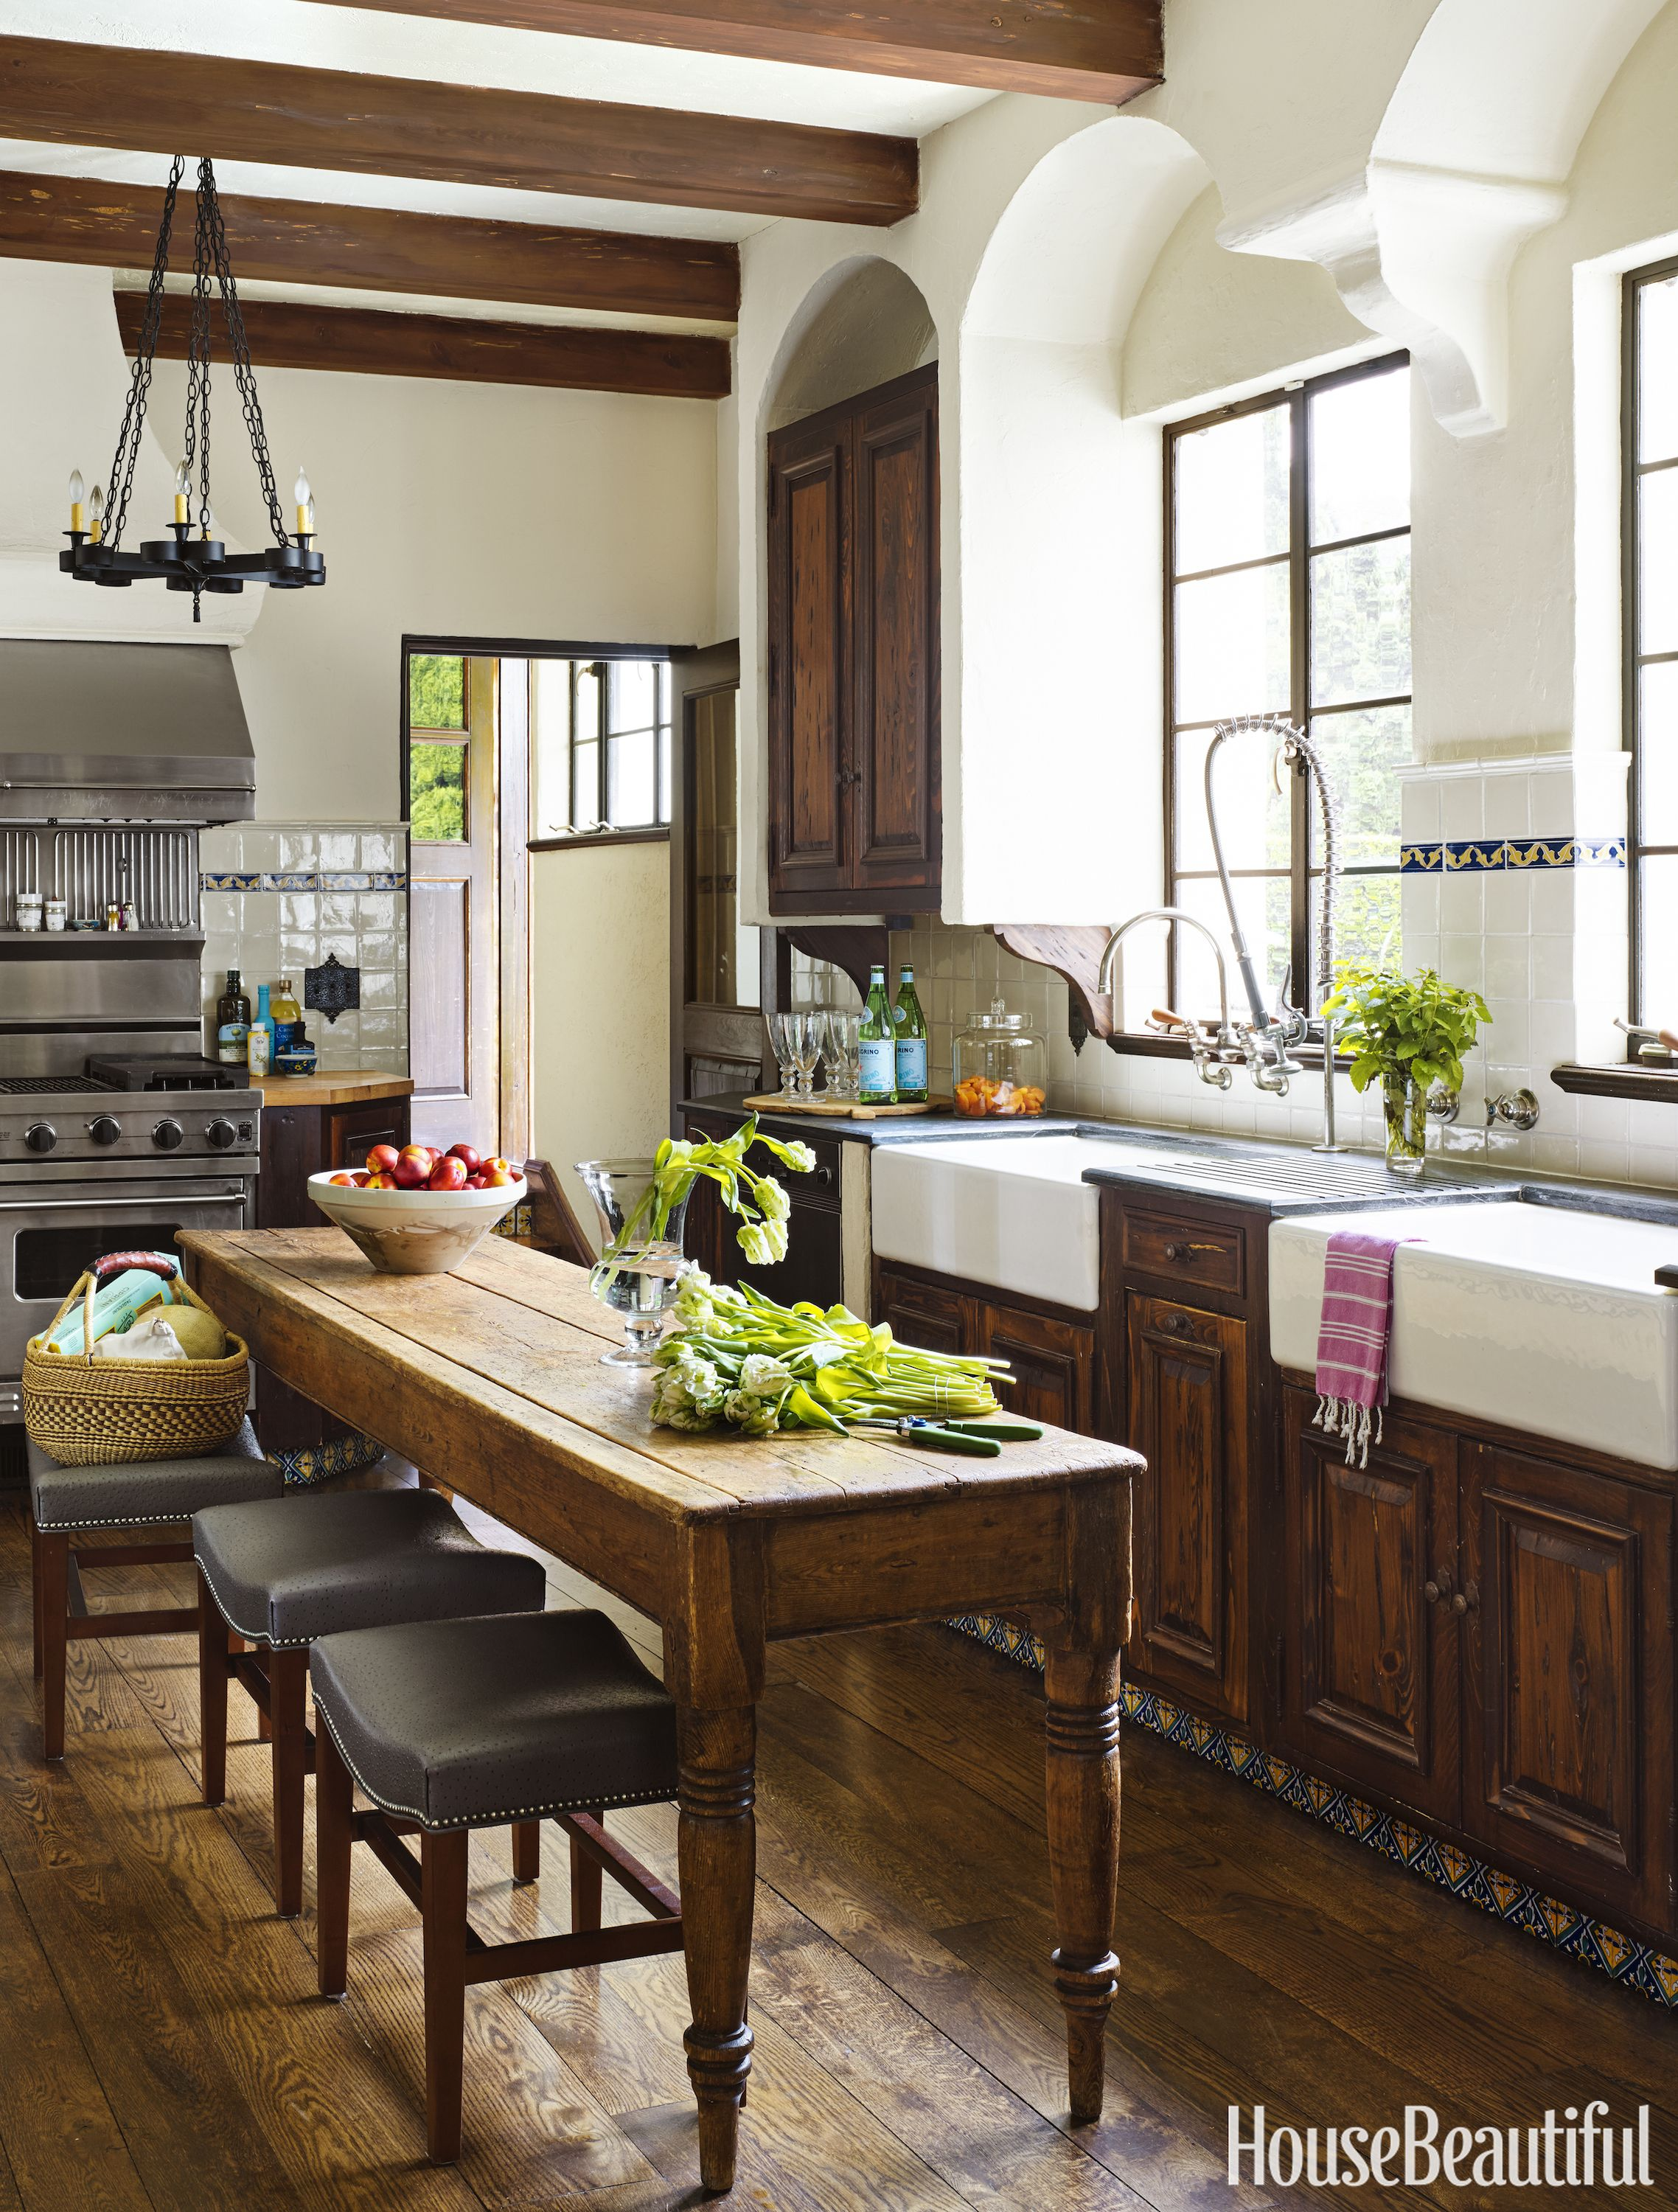 70 Kitchen Design & Remodeling Ideas Pictures Of Beautiful Kitchens